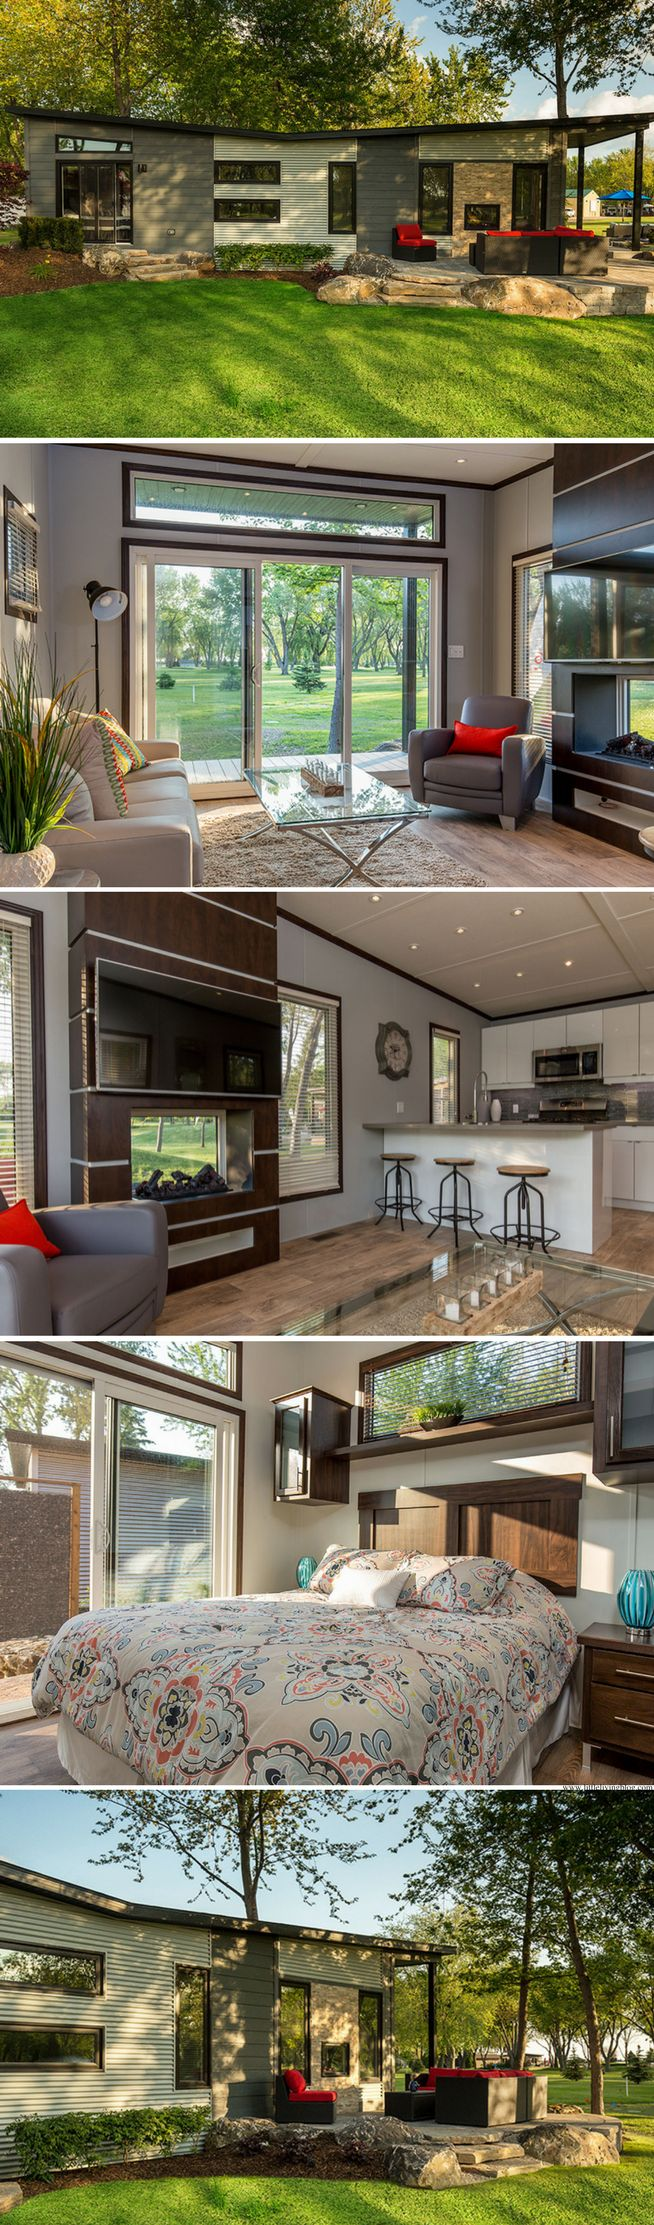 Container House - The Chapman (540 sq ft) Who Else Wants Simple Step-By-Step Plans To Design And Build A Container Home From Scratch?